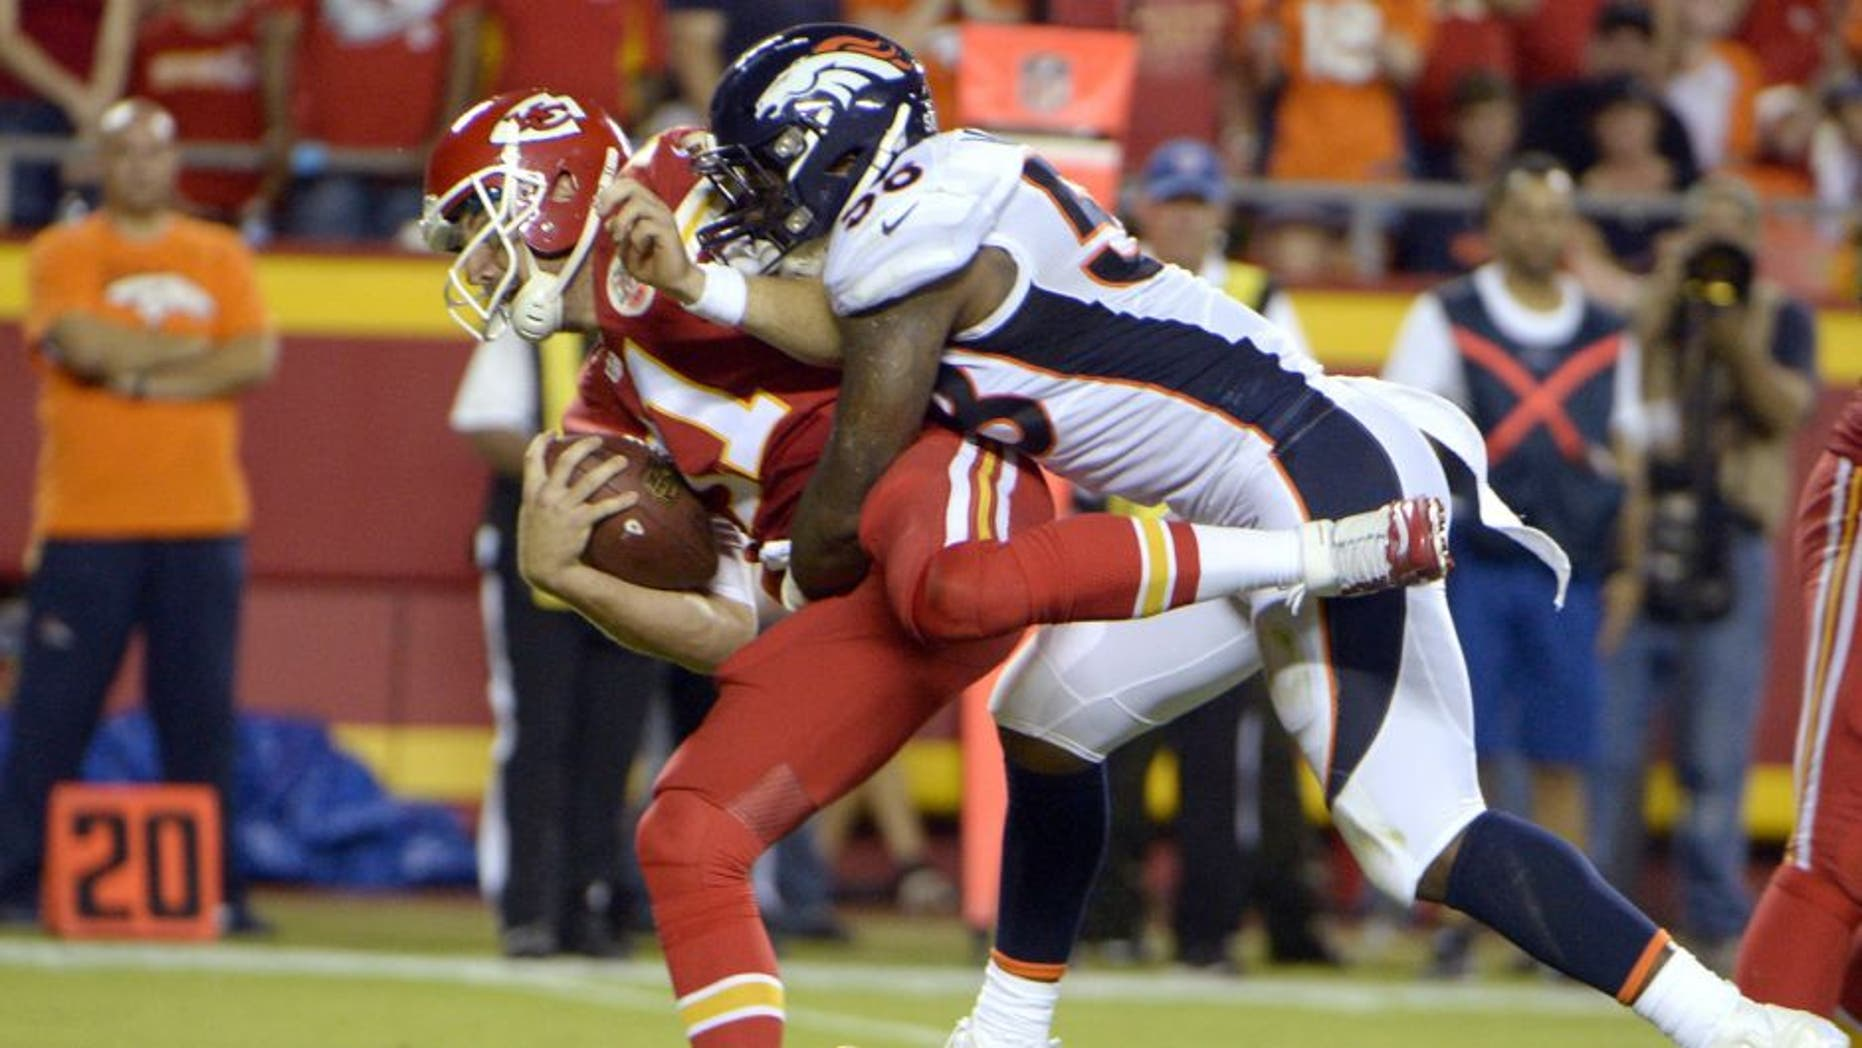 Sep 17, 2015; Kansas City, MO, USA; Denver Broncos outside linebacker Von Miller (58) is penalized for hitting Kansas City Chiefs quarterback Alex Smith (11) in the first half at Arrowhead Stadium. Mandatory Credit: John Rieger-USA TODAY Sports